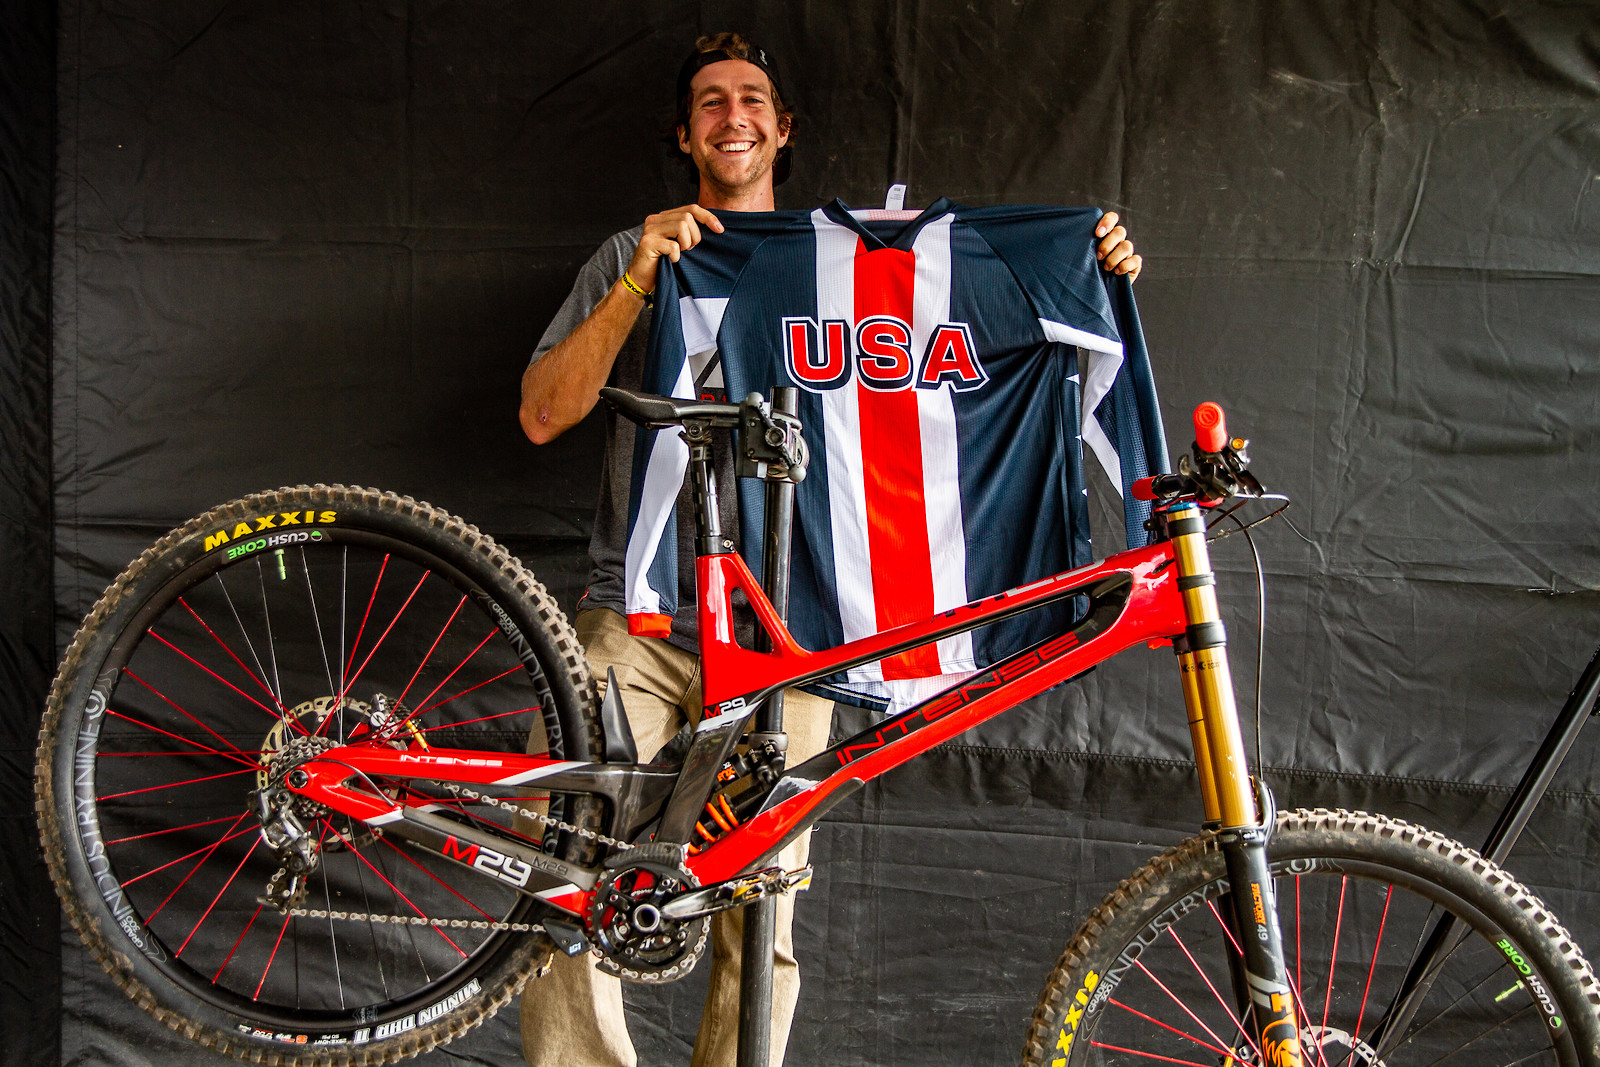 #USDH PIT BITS - Snowshoe World Cup Downhill - Steve Estabarook - JackRice - Mountain Biking Pictures - Vital MTB